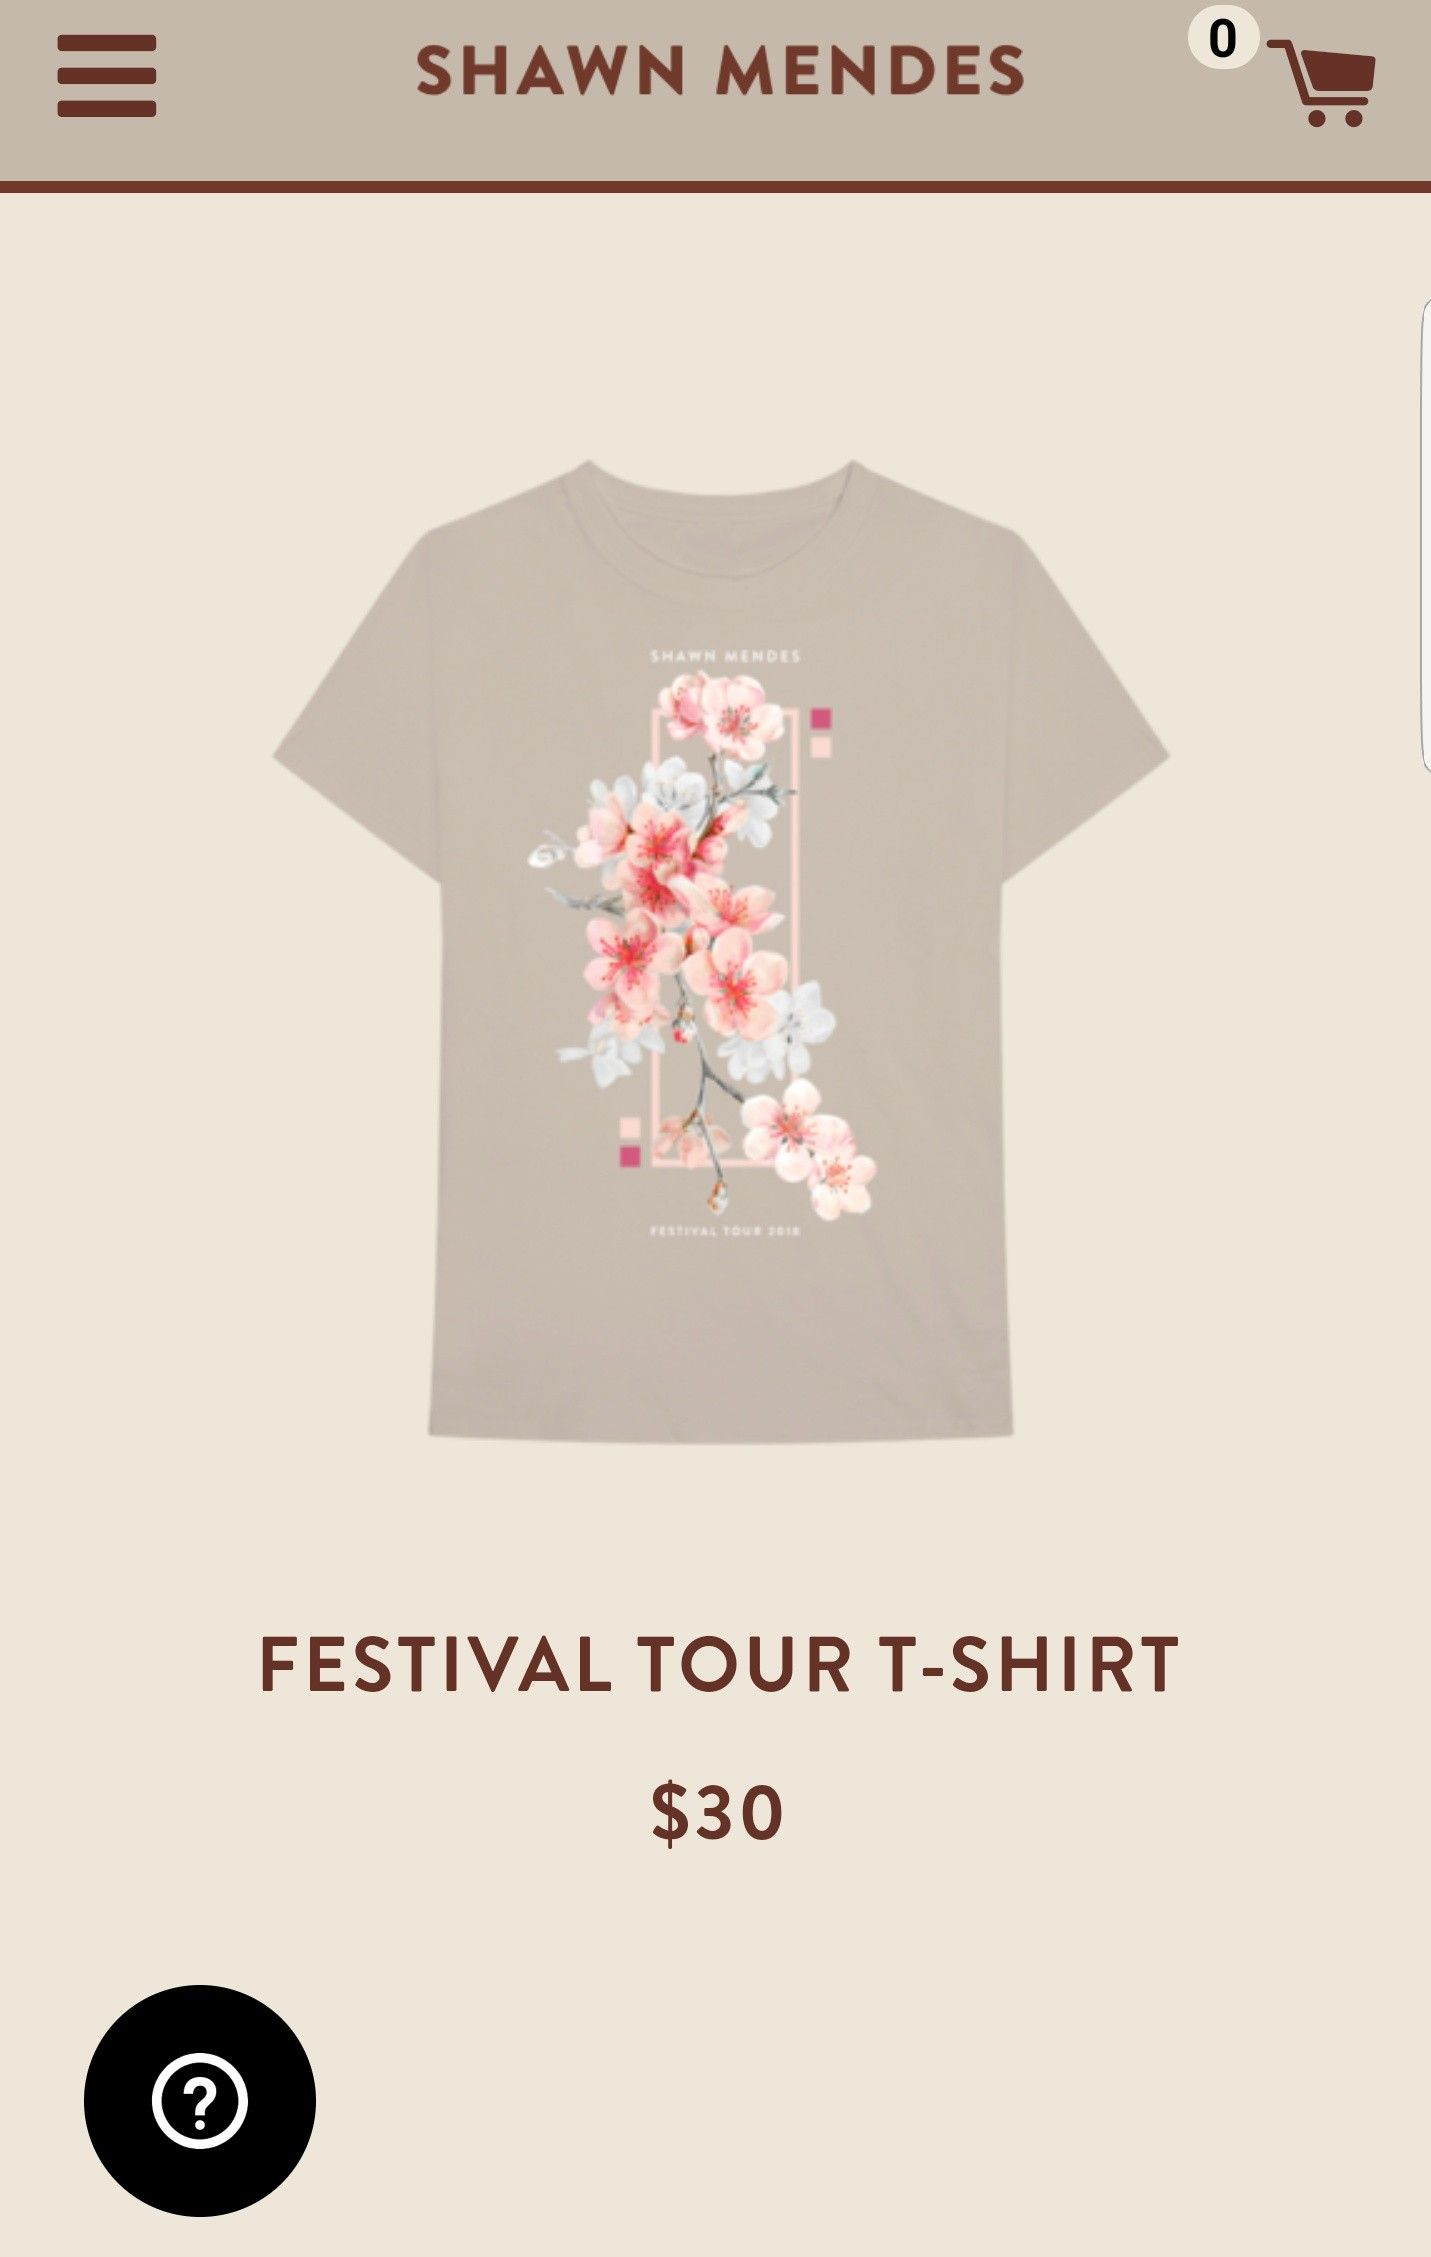 487a759ad Shawn Mendes The Tour T-shirt 30$😭❤ #shawnmendesthetour2018 | The ...